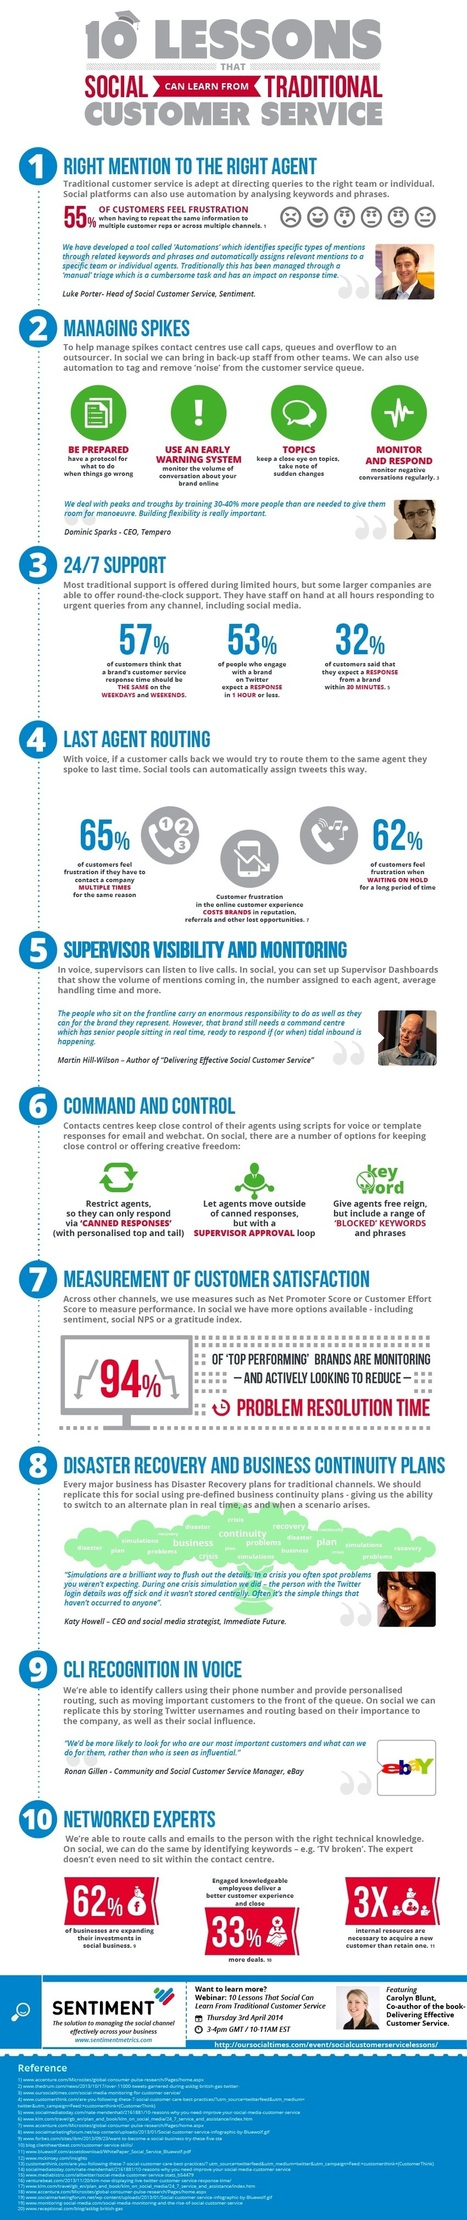 10 Lessons for Social Customer Service [INFOGRAPHIC] | Customer Service Innovation | Scoop.it